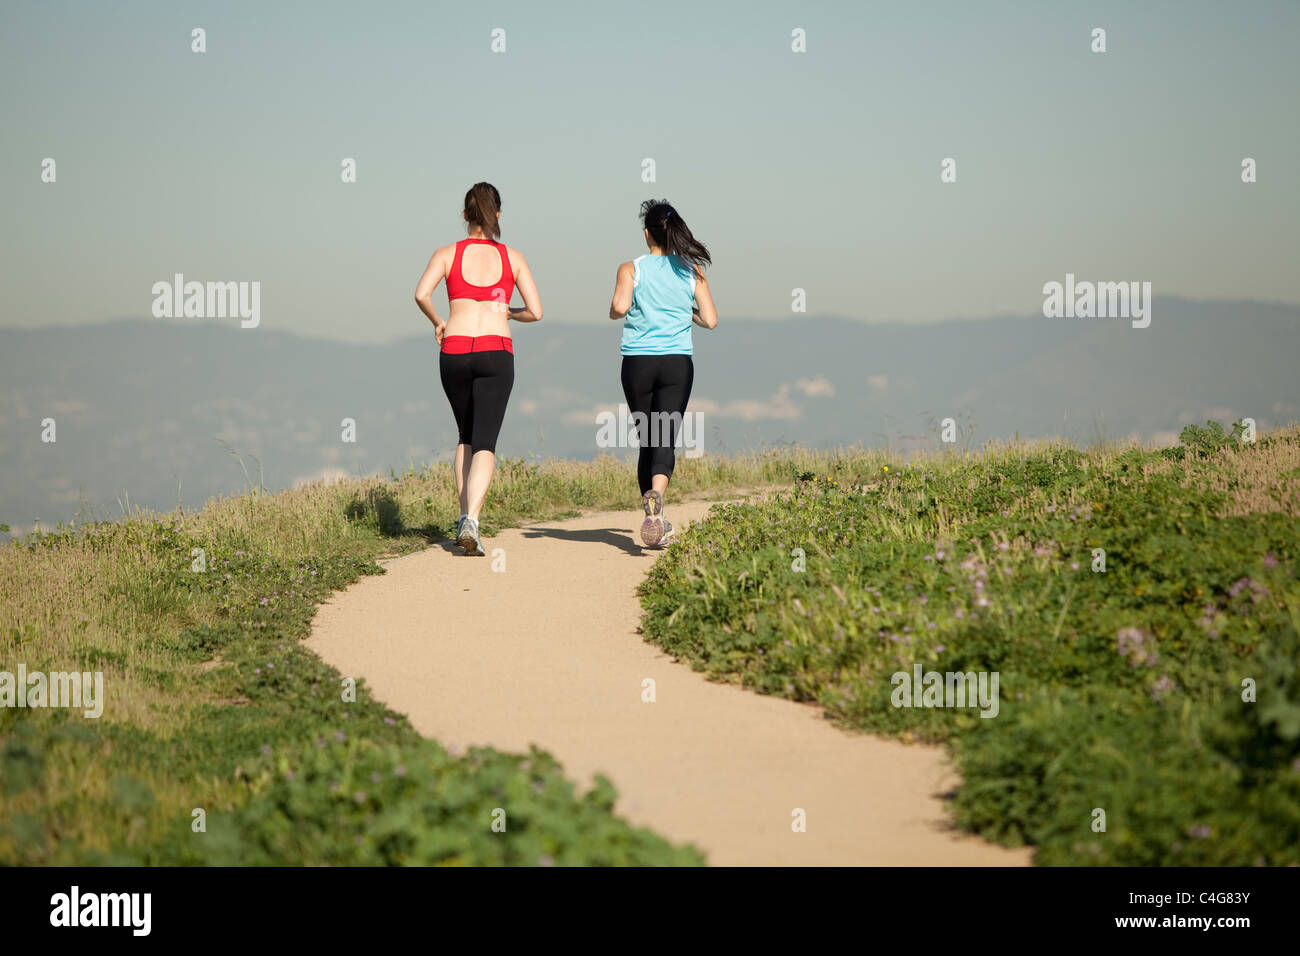 two athletic females, in workout clothes,  running on a dirt path through nature in the daytime - Stock Image